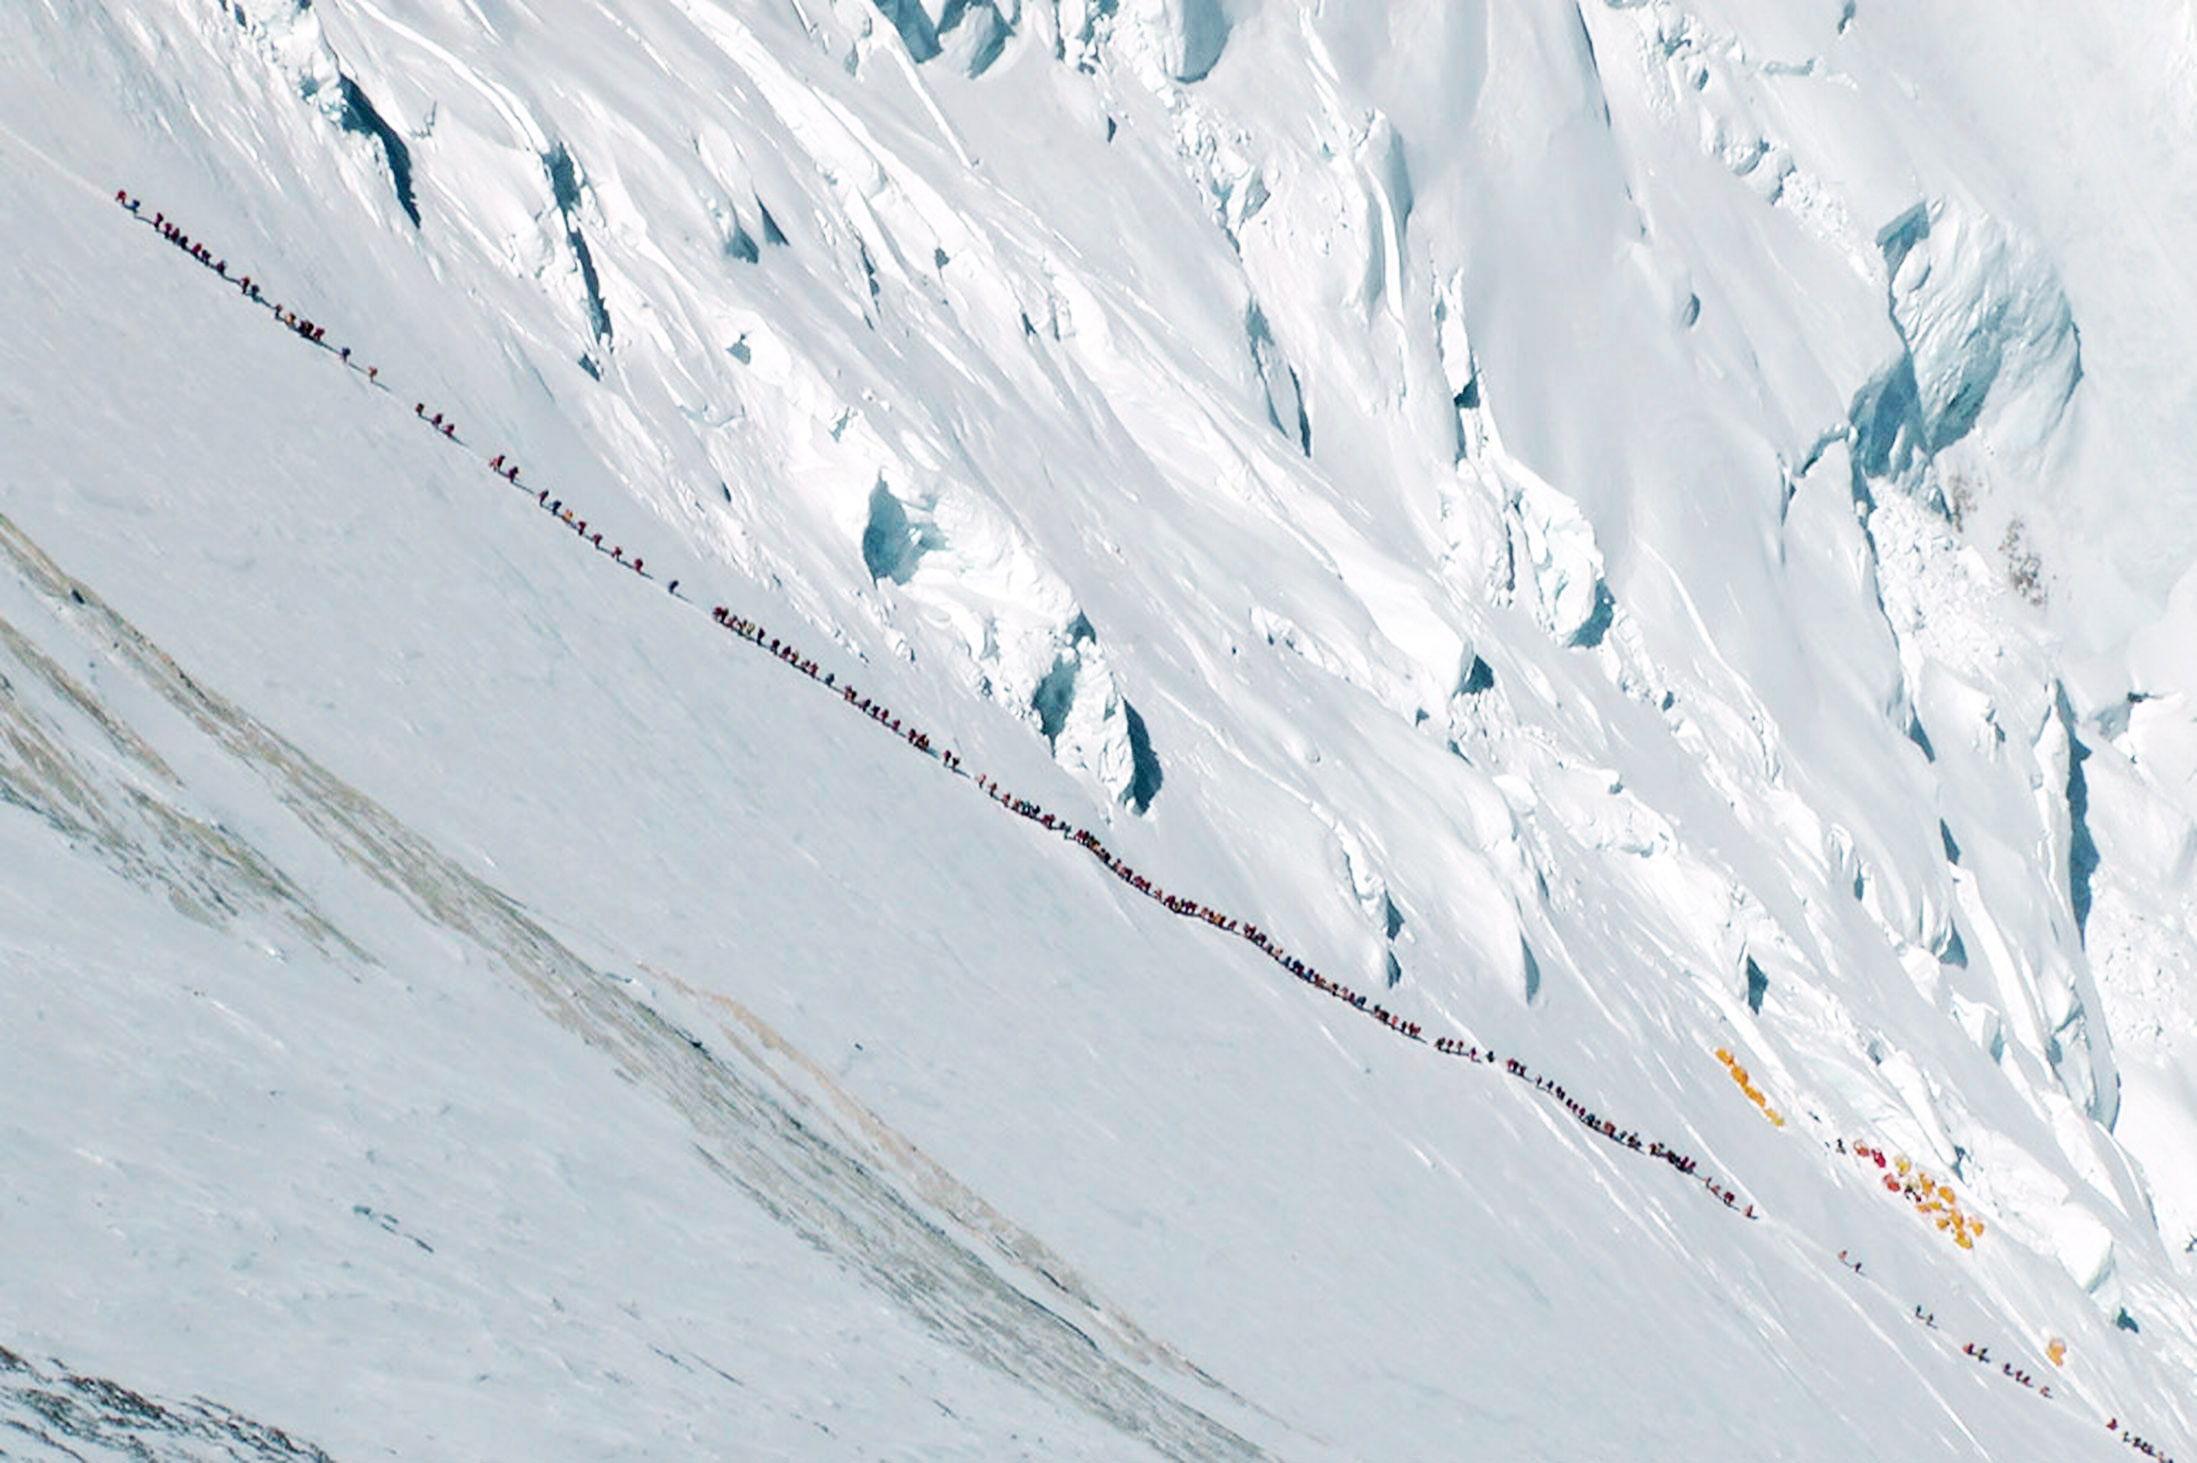 Ralf Dujmovits photo of Everest and a line of tourists